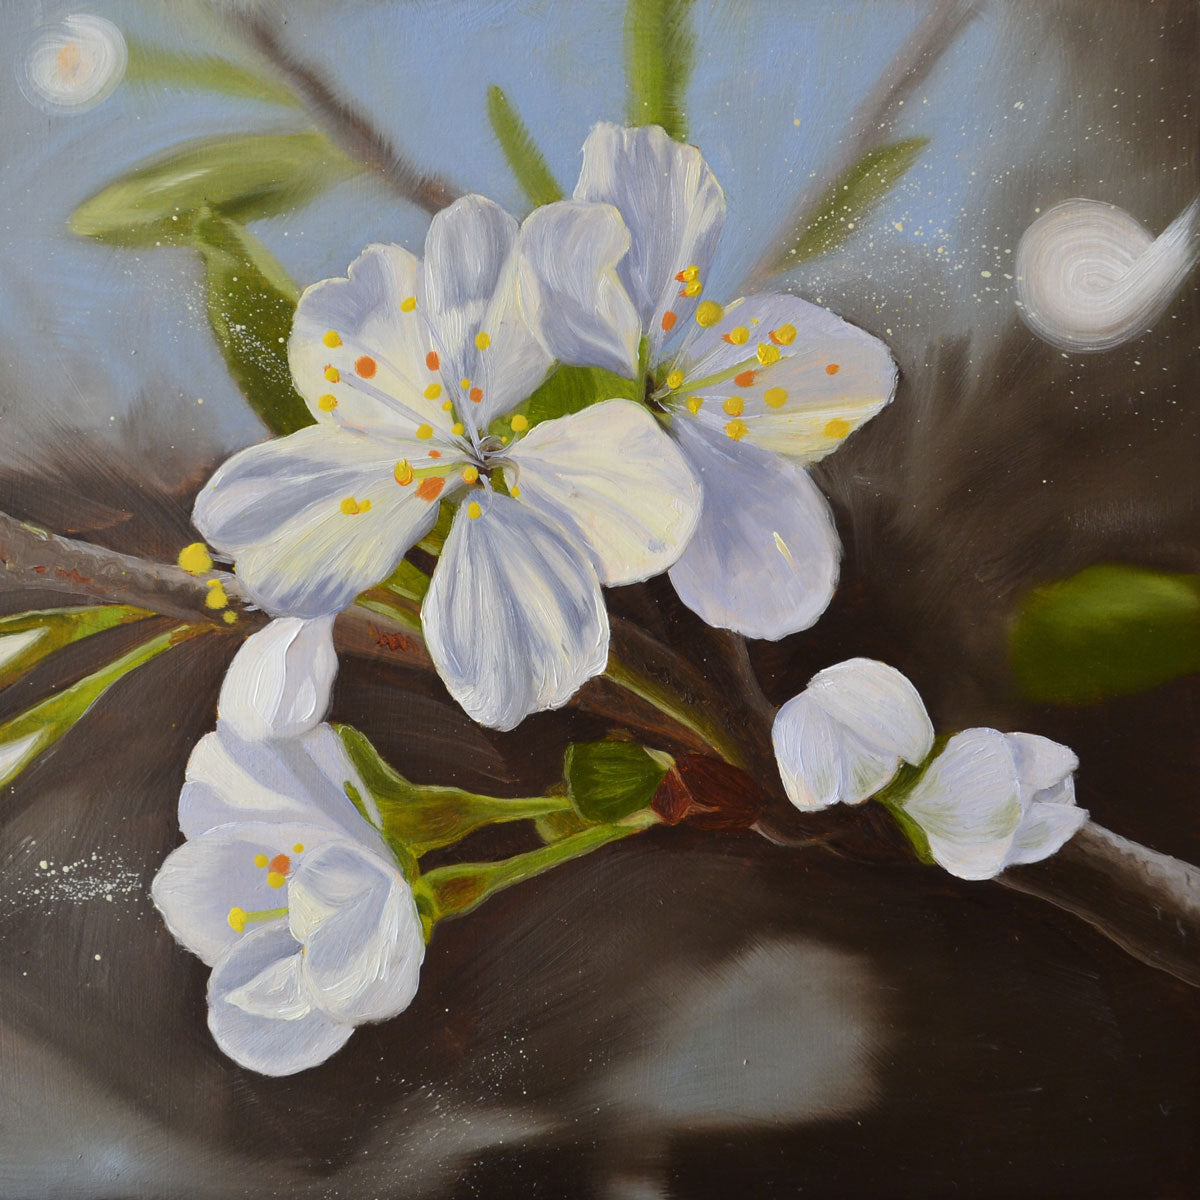 Morello cherry blossom II - original oil painting